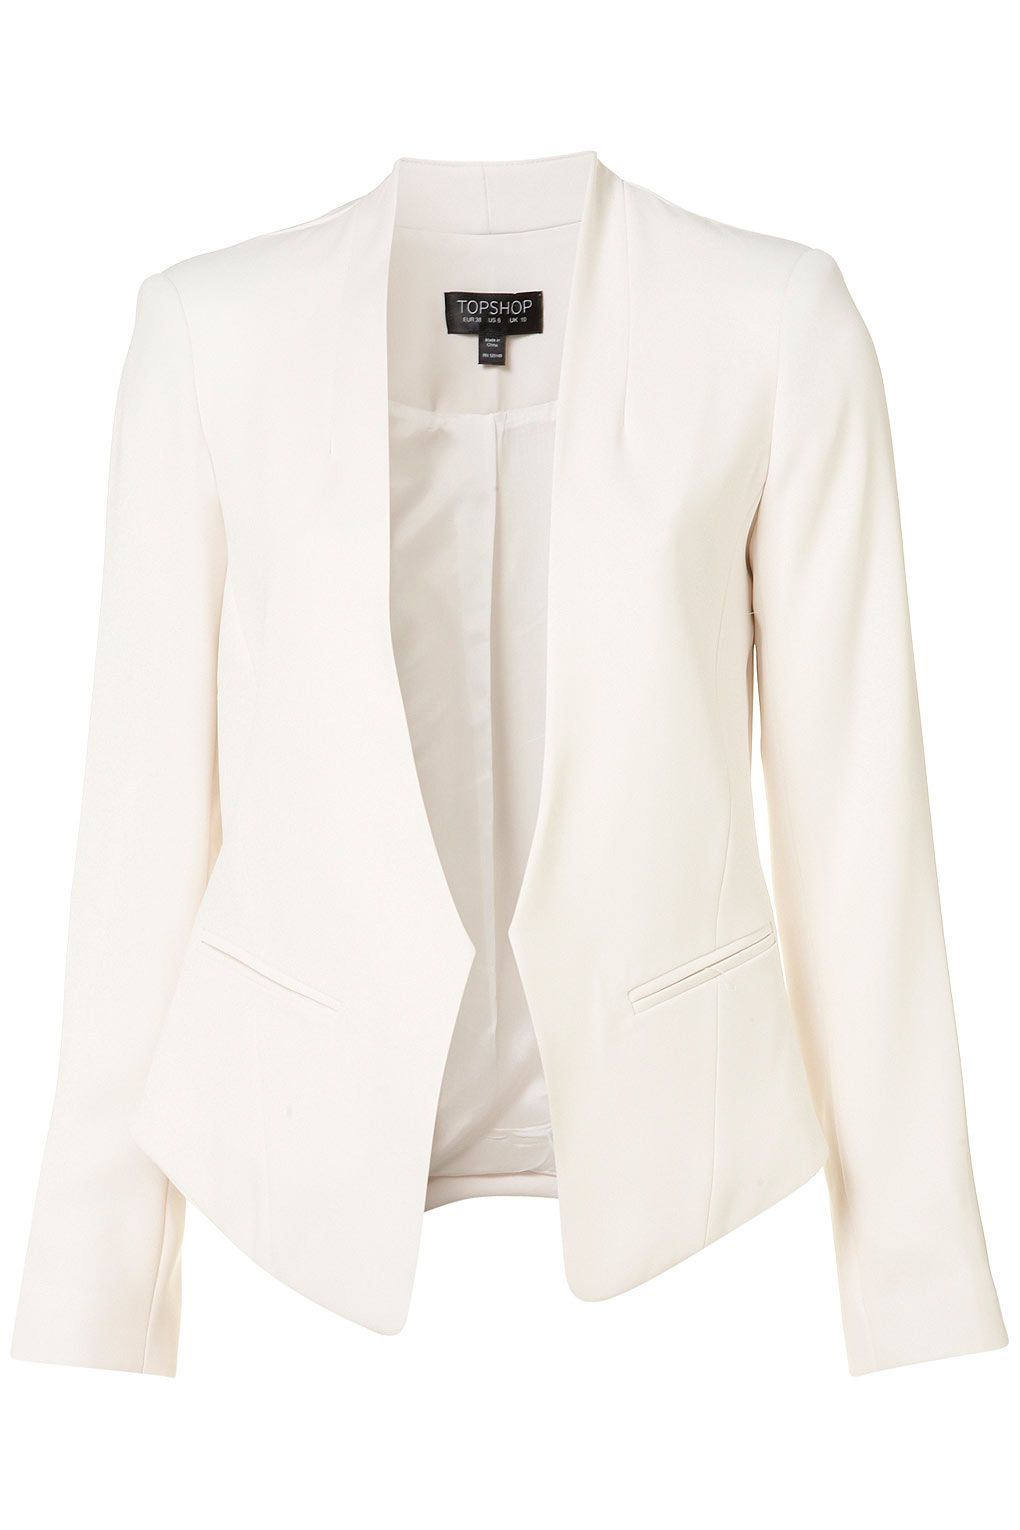 Discover our stylish range of men's blazers from ASOS. Shop from a variety of longline and classic styles and choose from soft velvet to a range of colors. your browser is not supported. River Island skinny fit blazer in off white. £ ASOS DESIGN Skinny Blazer In Black Cotton. £ ASOS DESIGN Super Skinny Blazer In White Linen.